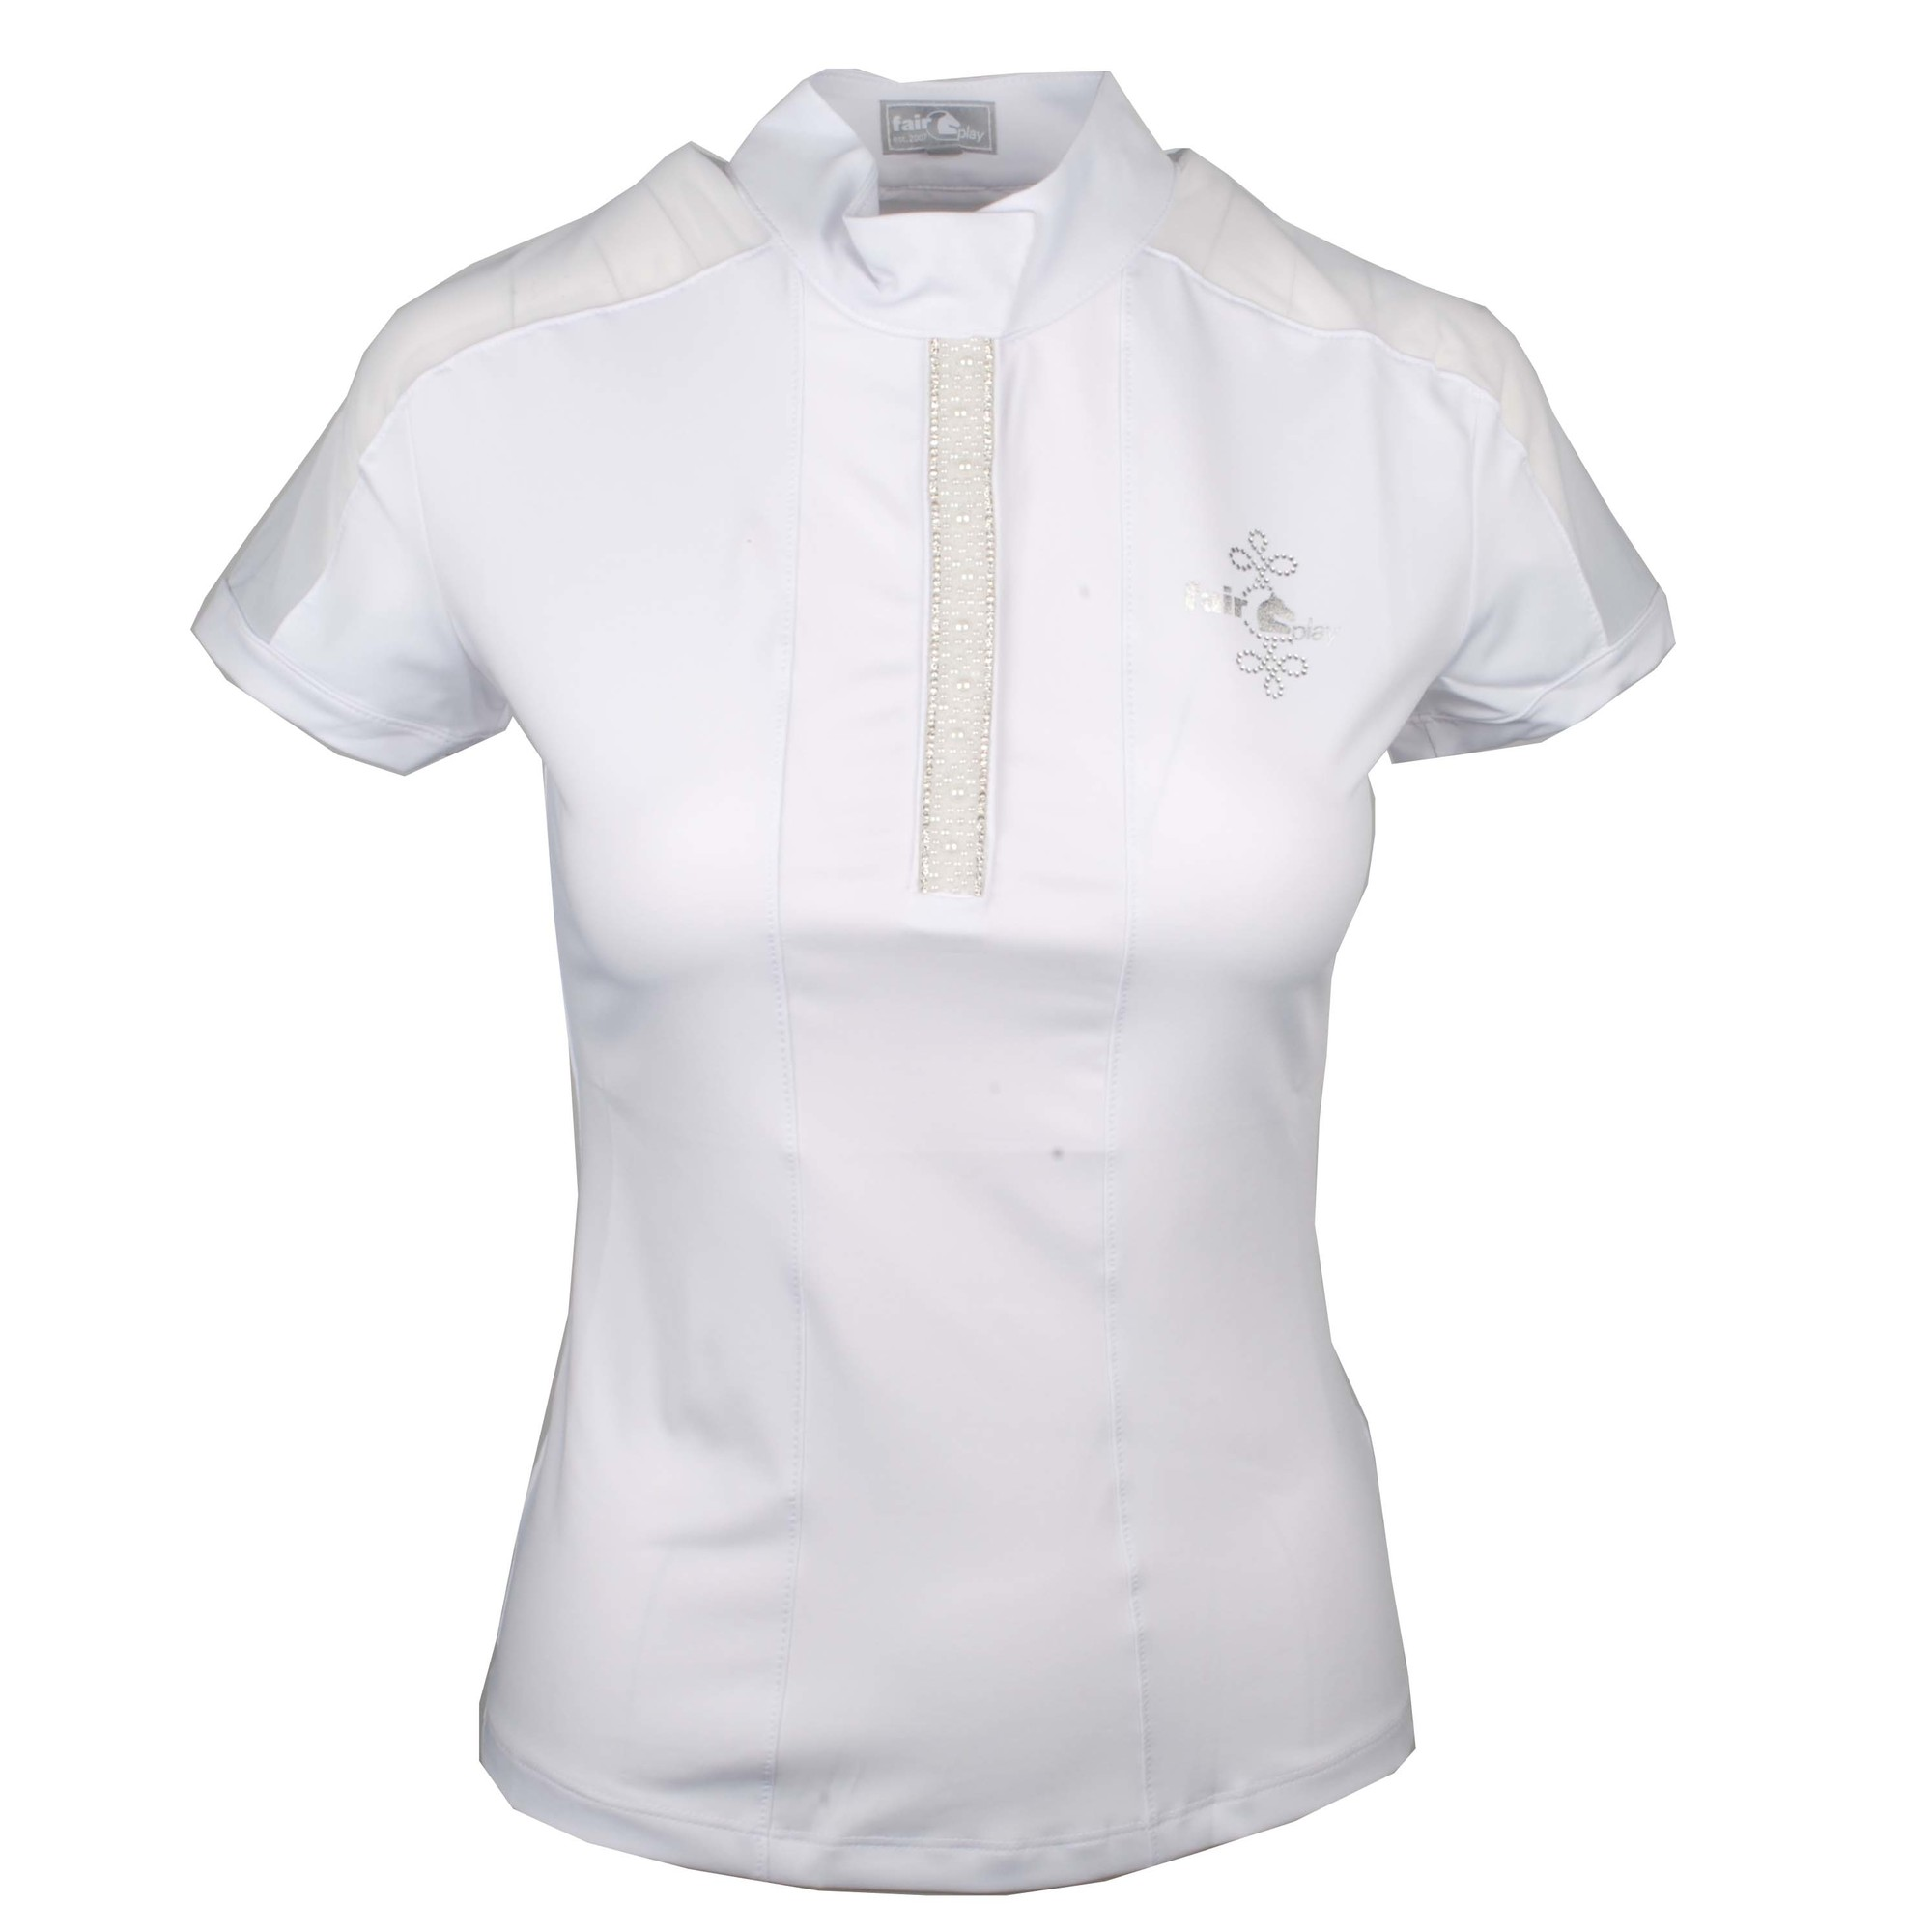 Fair Play Claire Pearl wedstrijdshirt wit maat:42